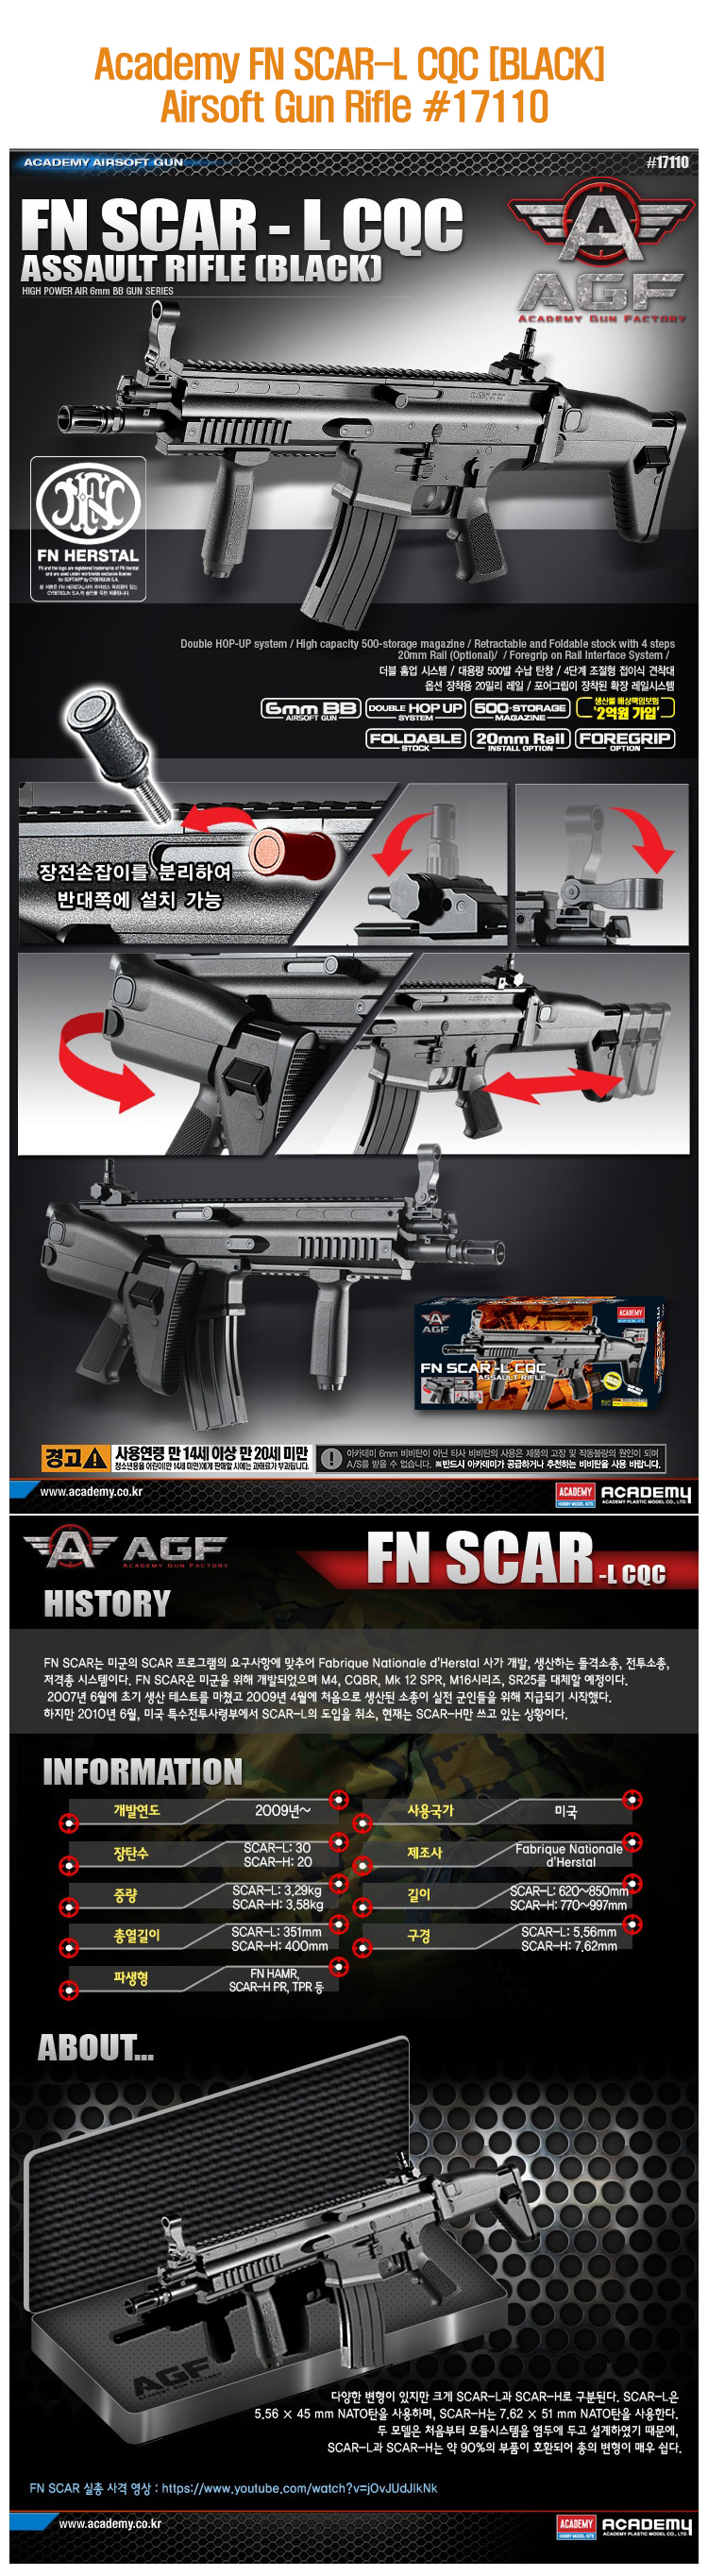 Academy Fn Scar L Cqc Black Airsoft Gun Rifle Toy 17110 Air Soft There Are Countries That Need Licenses To Import Guns Please Check Carefully Customs Rule Before Purchasing